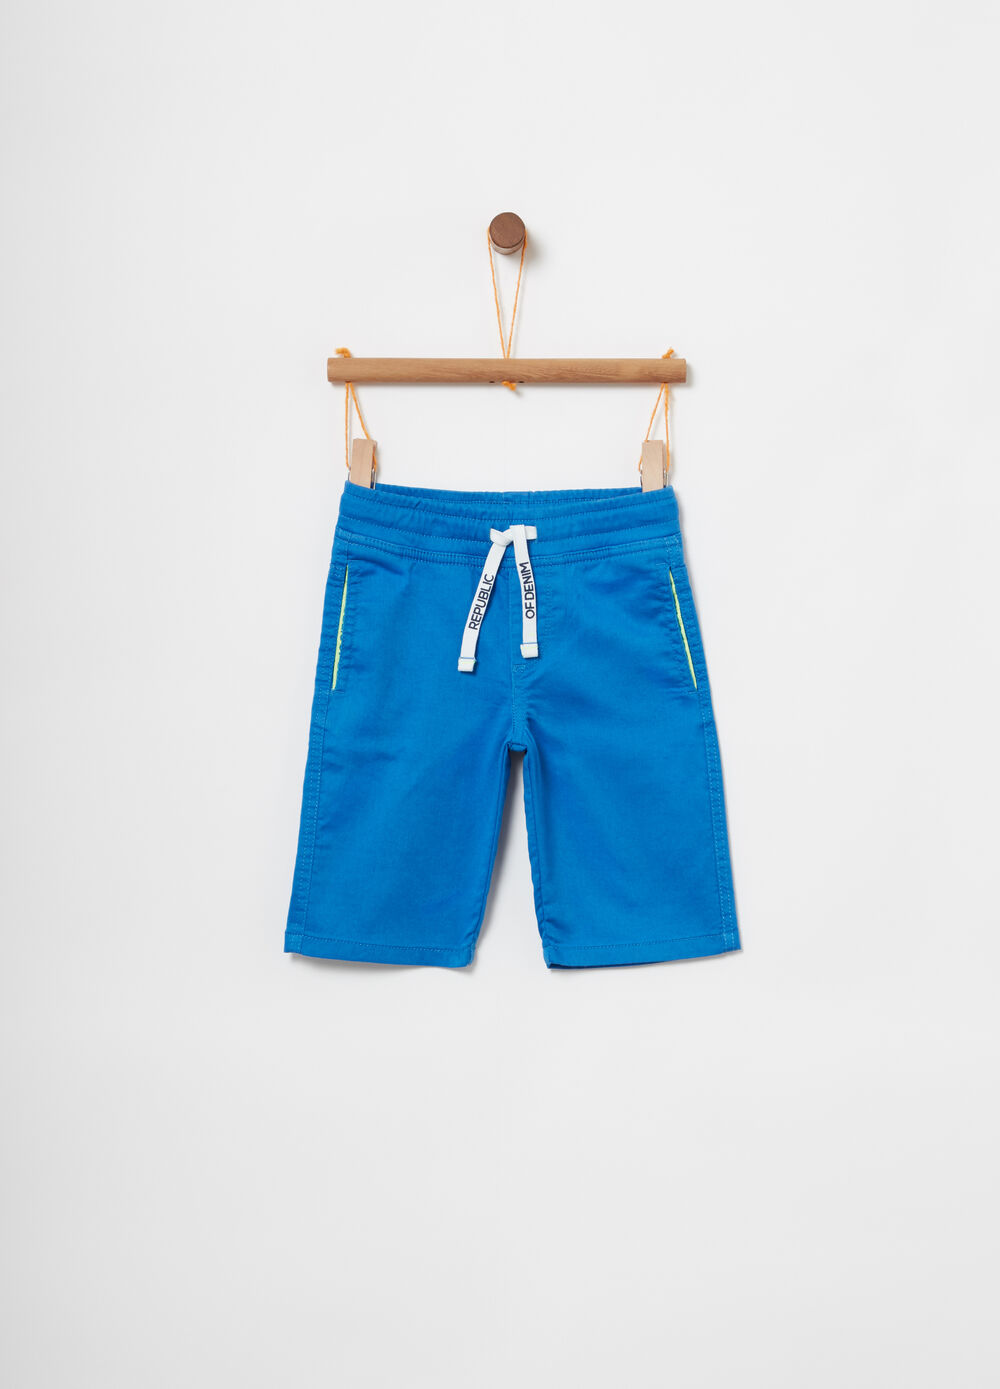 Denim shorts with side pockets